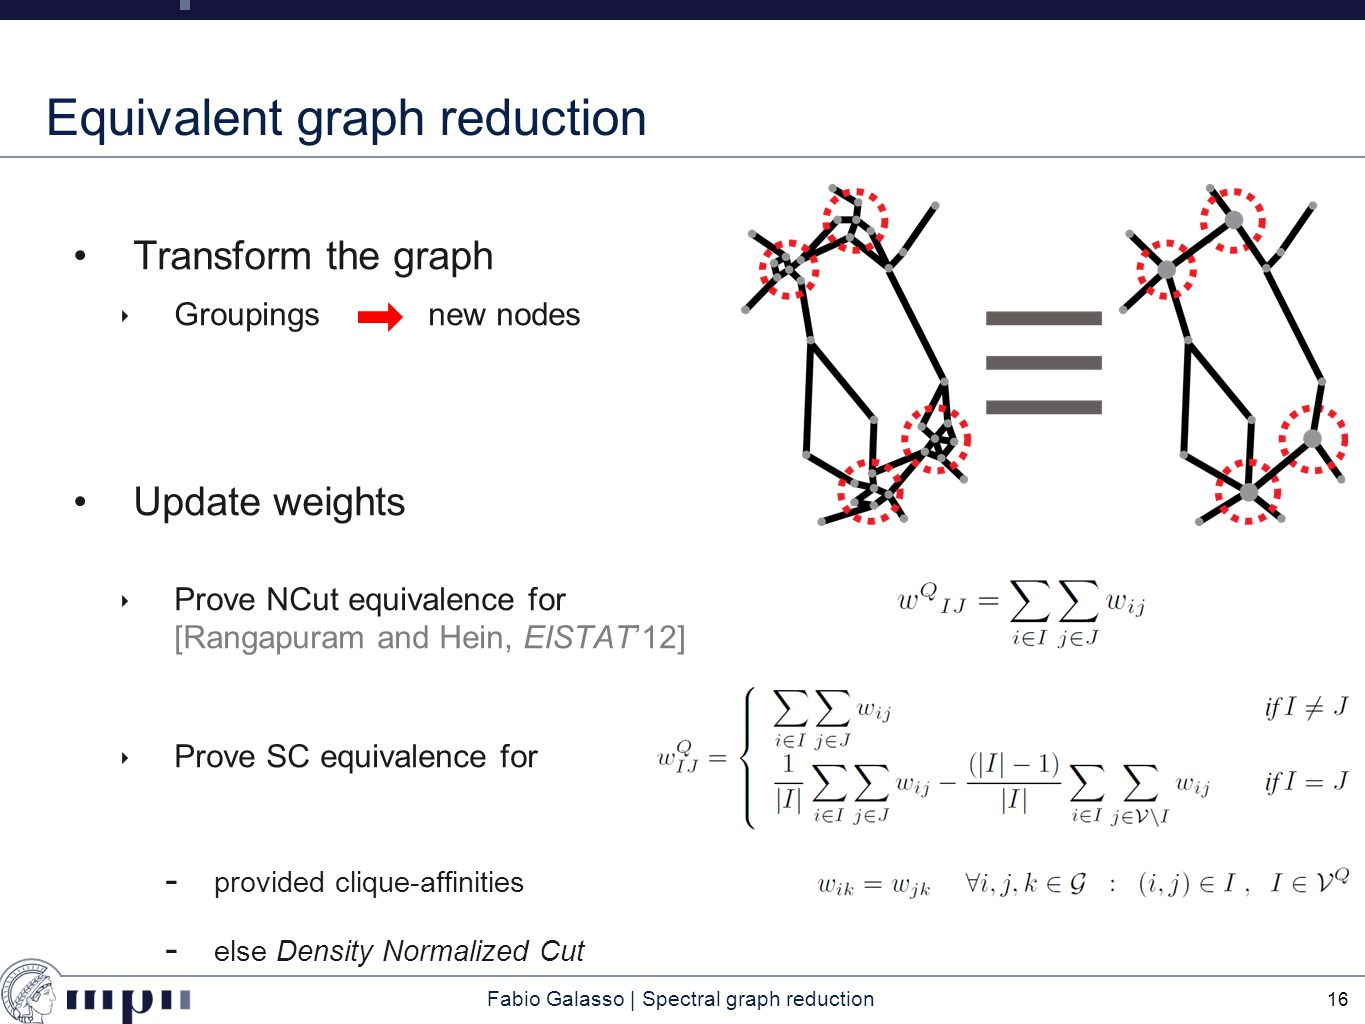 Fabio Galasso | Spectral graph reduction Equivalent graph reduction Transform the graph ‣ Groupingsnew nodes Update weights ‣ Prove NCut equivalence for [Rangapuram and Hein, EISTAT'12] ‣ Prove SC equivalence for  provided clique-affinities  else Density Normalized Cut 16